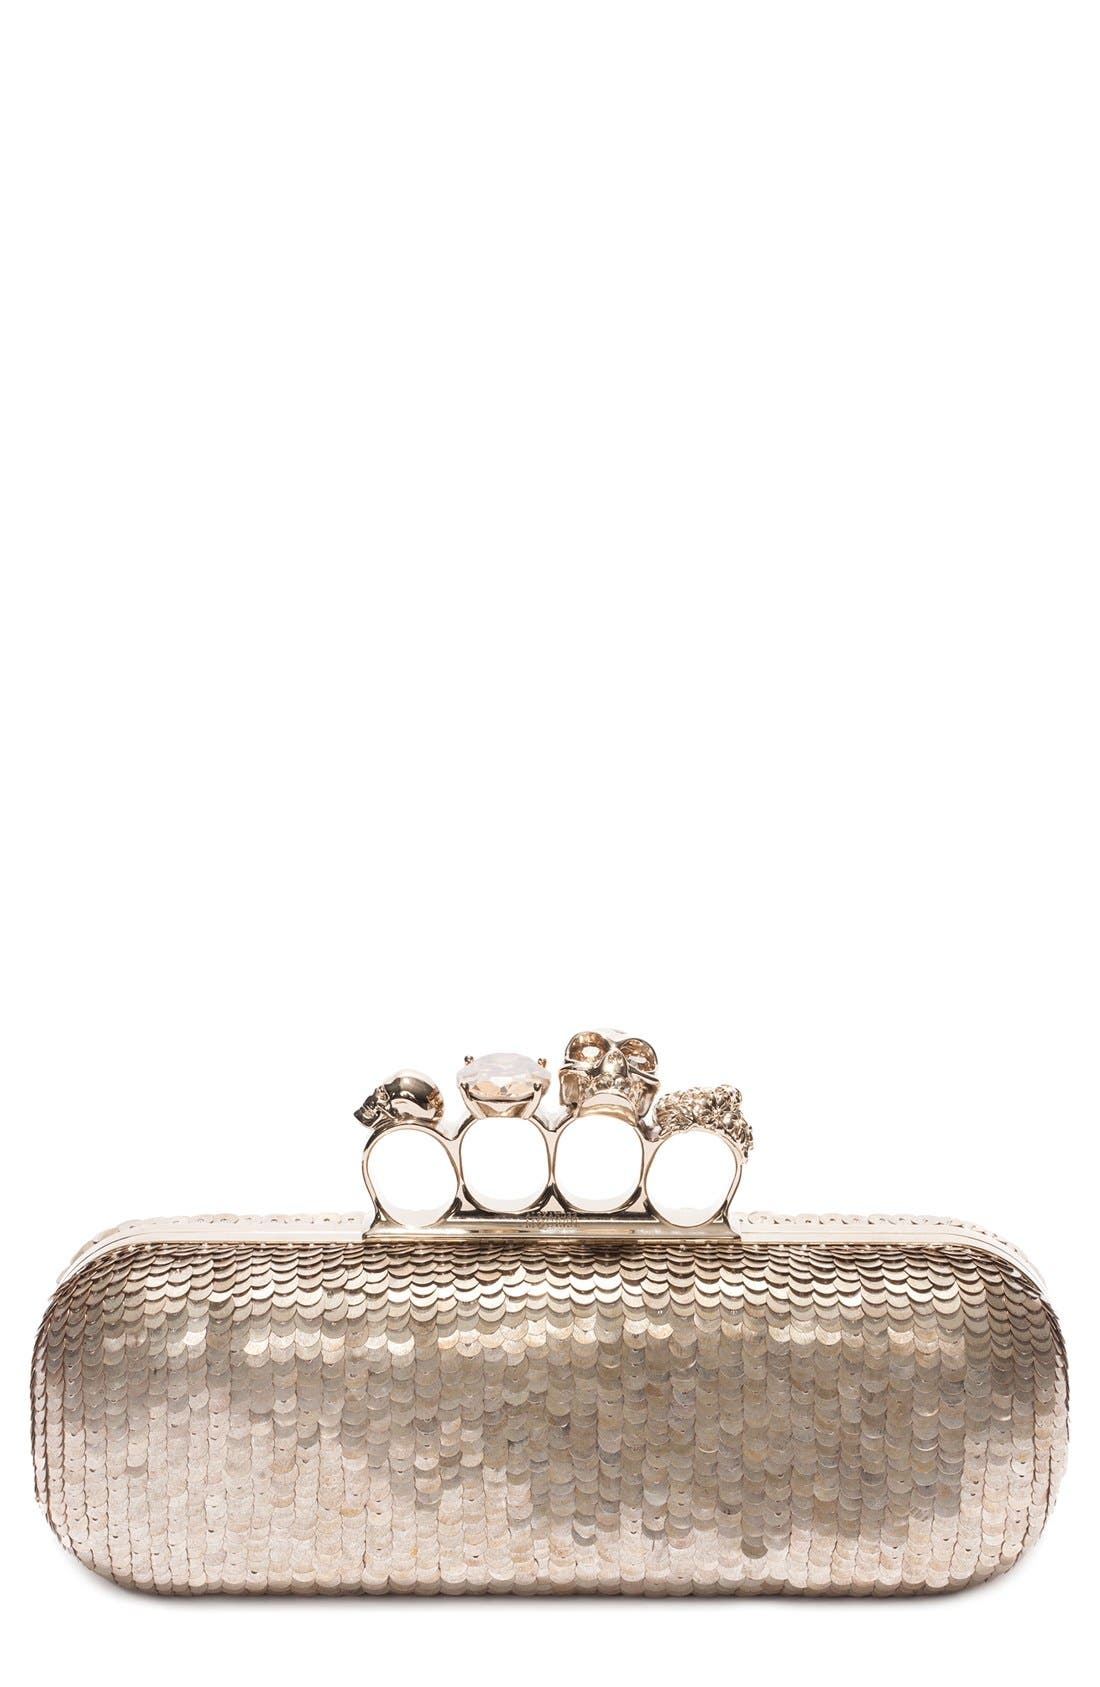 Alternate Image 1 Selected - Alexander McQueen Knuckle Clasp Leather Box Clutch